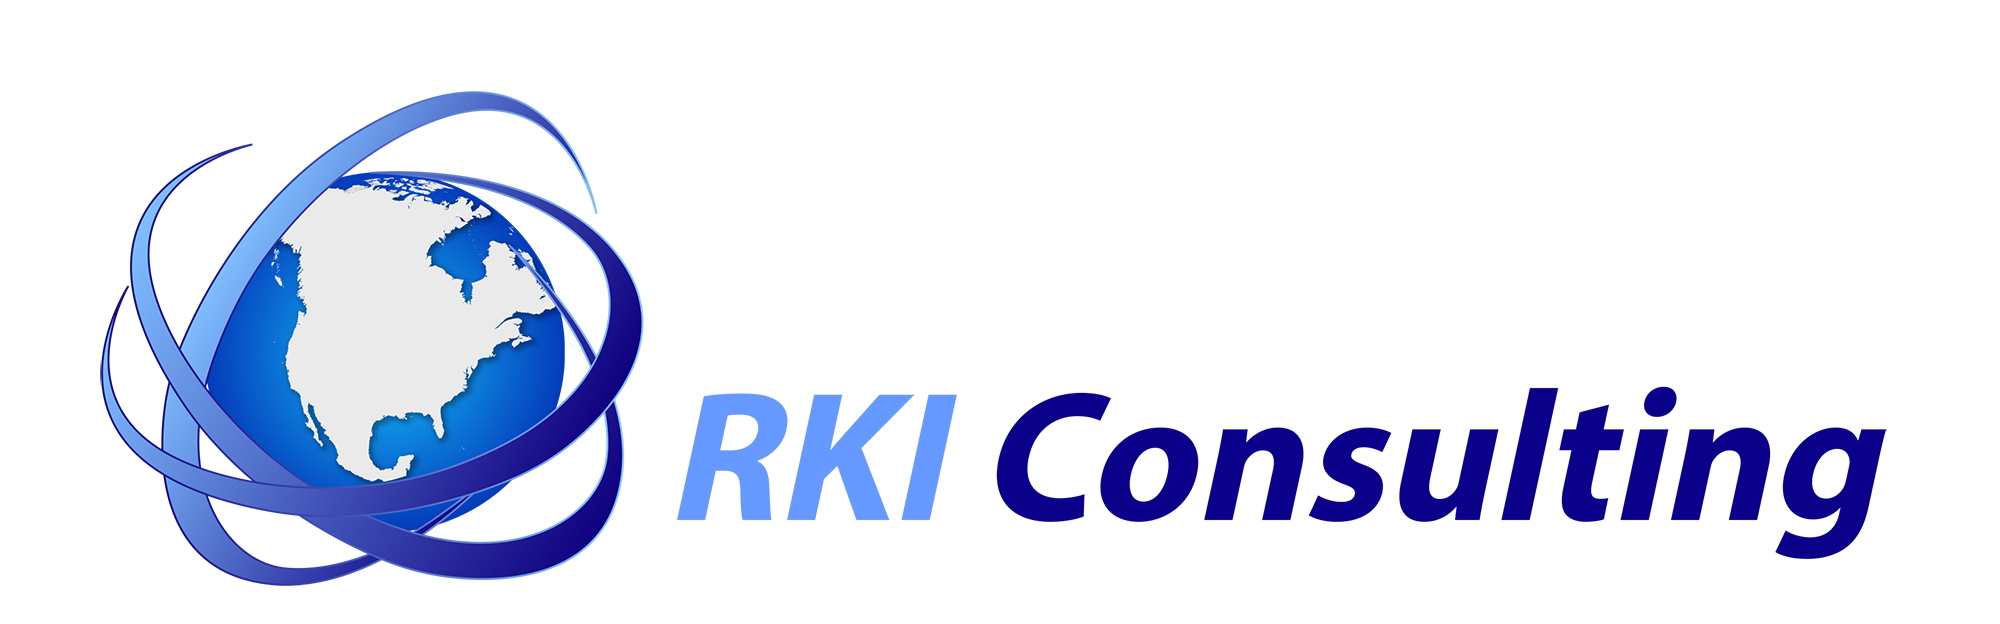 Consulting Company Logo Example